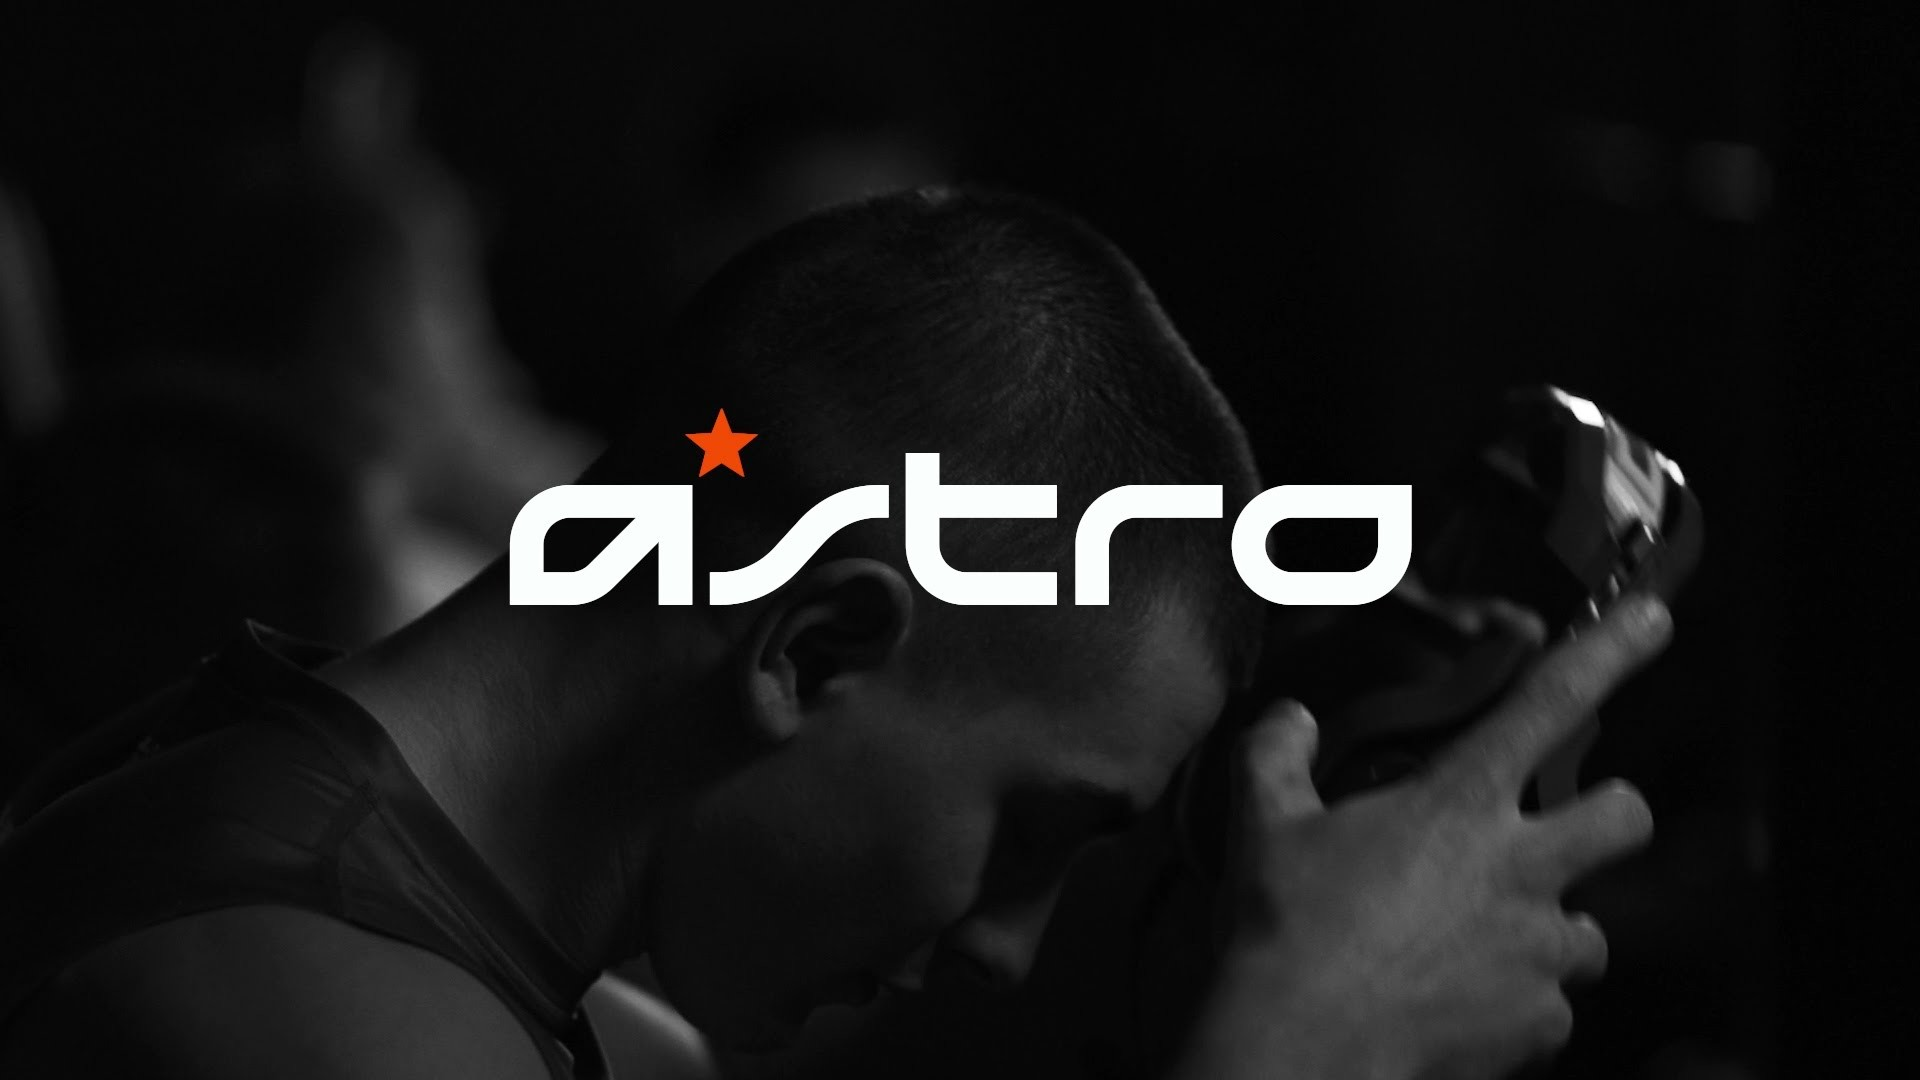 Astro Gaming is the manufacturer and supplier of video gaming equipment. Astro Gaming is best known for their top selling gaming headphones, headset for Pro gamer and enthusiastic like you. It was founded few years back by Brett Lovelady and today they are one of the most trusted brand for gaming gears and accessories.